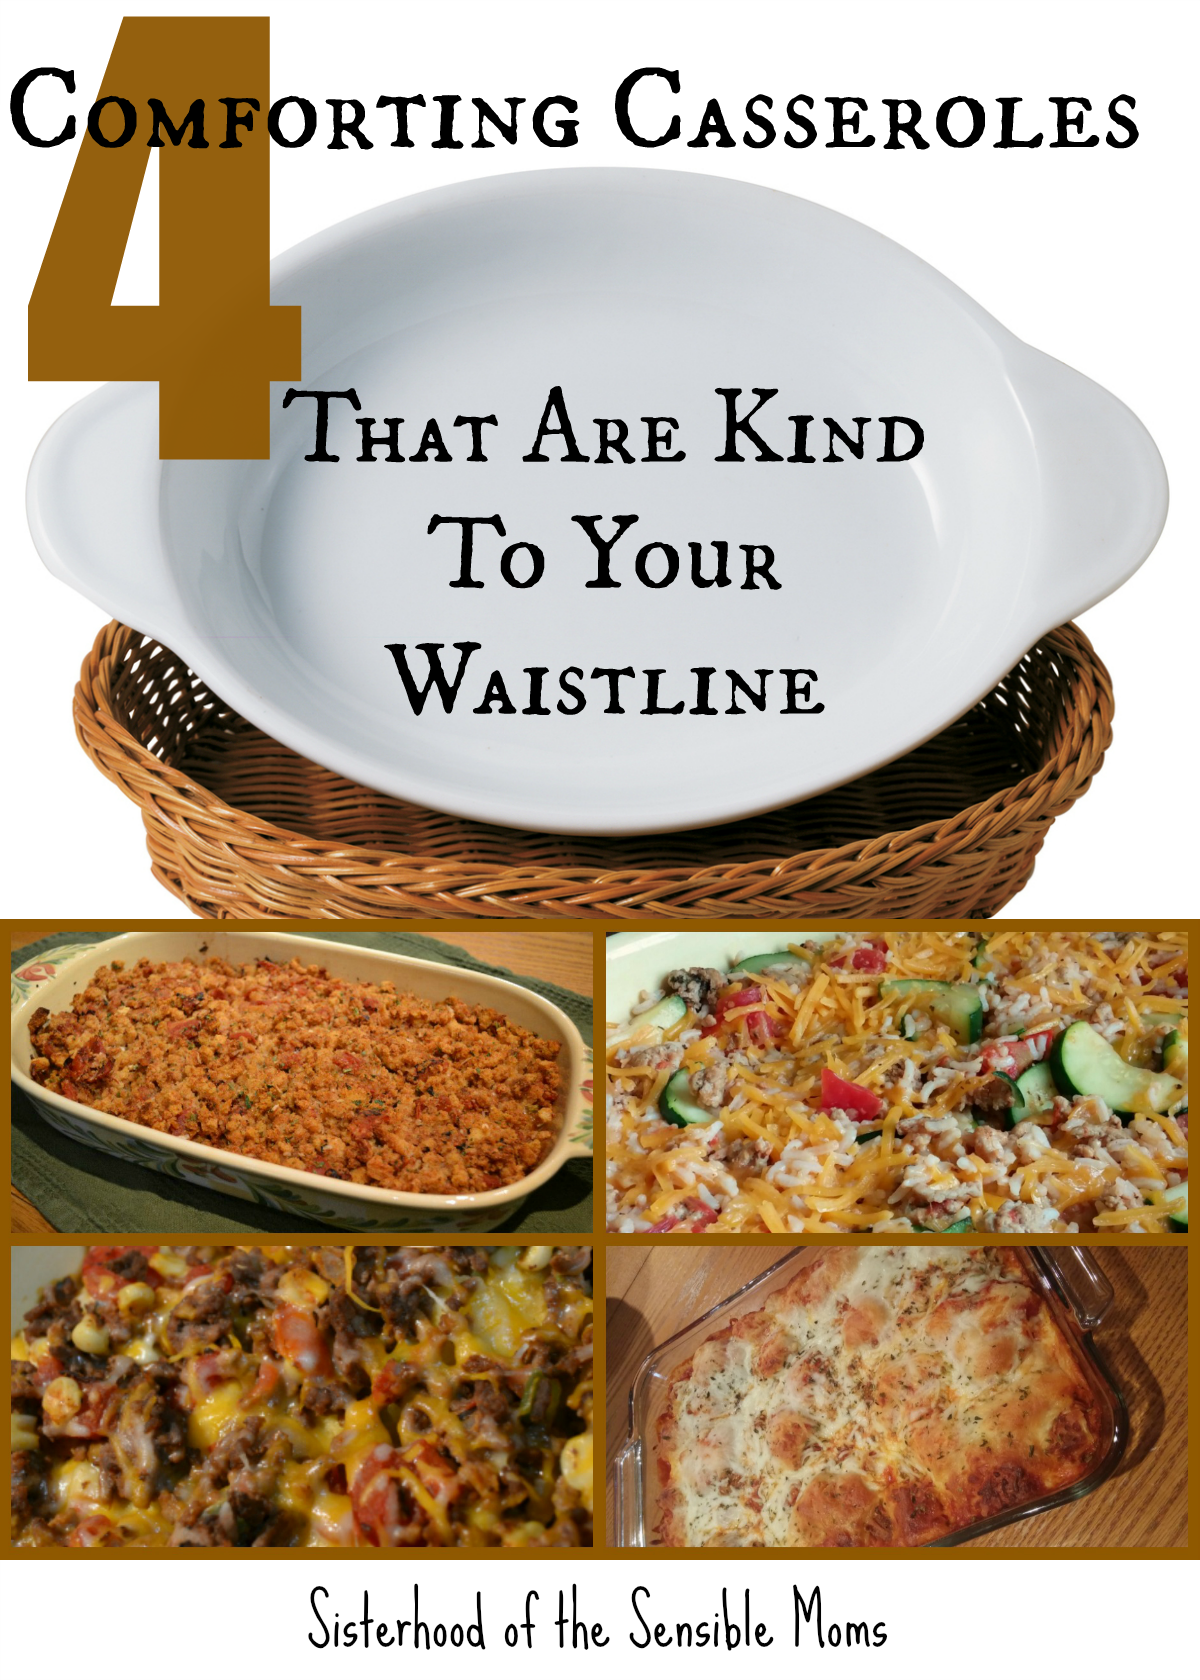 4 Comforting Casseroles That Are Kind to Your Waistline | These comforting casseroles are quick meals that please a variety of palates, yet are kind to the waistline. Easy recipes to double, freeze, and share! | Sisterhood of the Sensible Moms